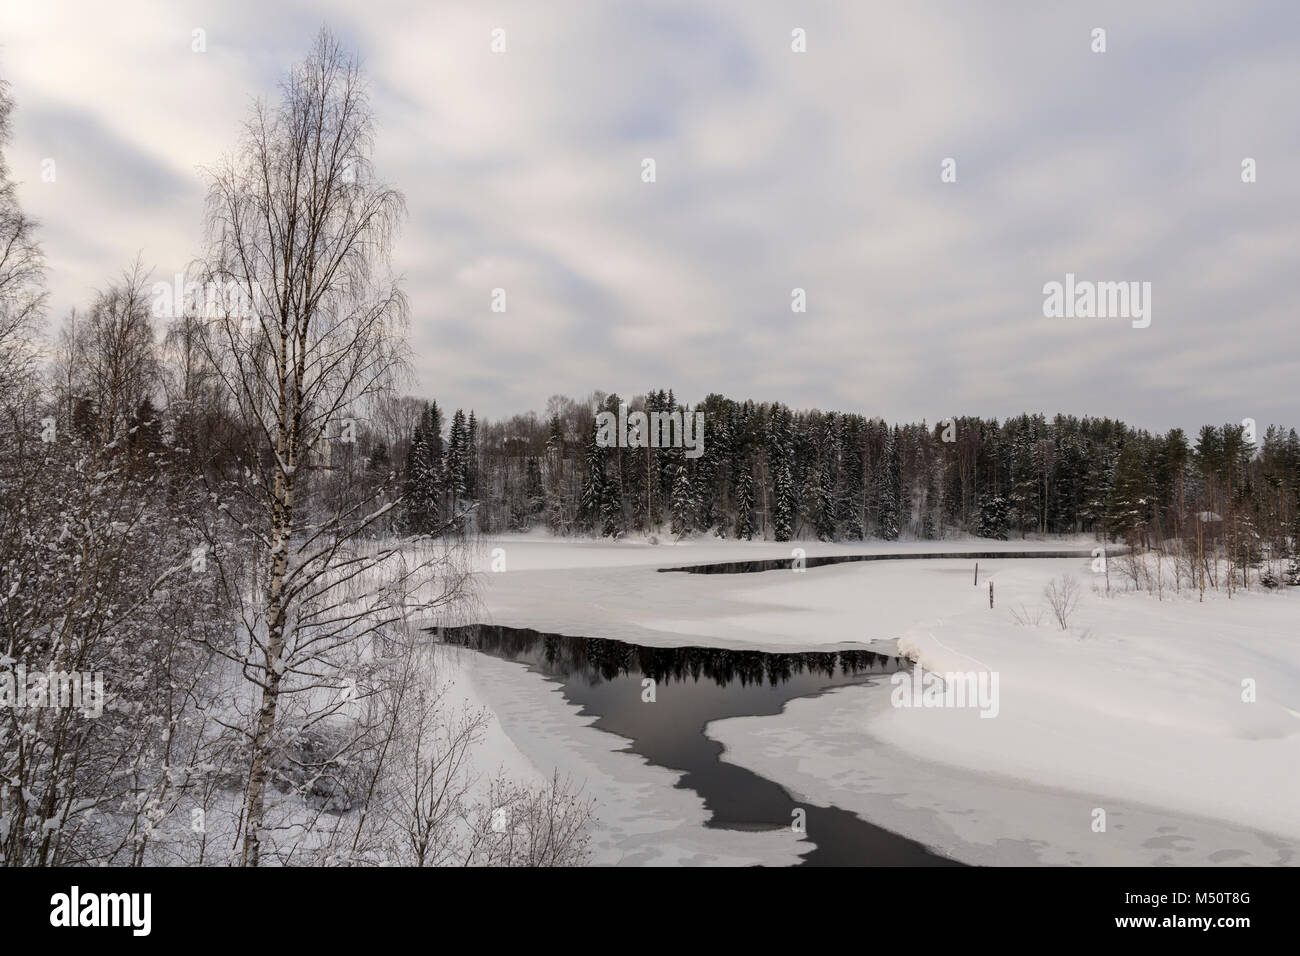 Frozen river with open spot reflecting trees and a birch in foreground and cloudy sky in background, picture from - Stock Image